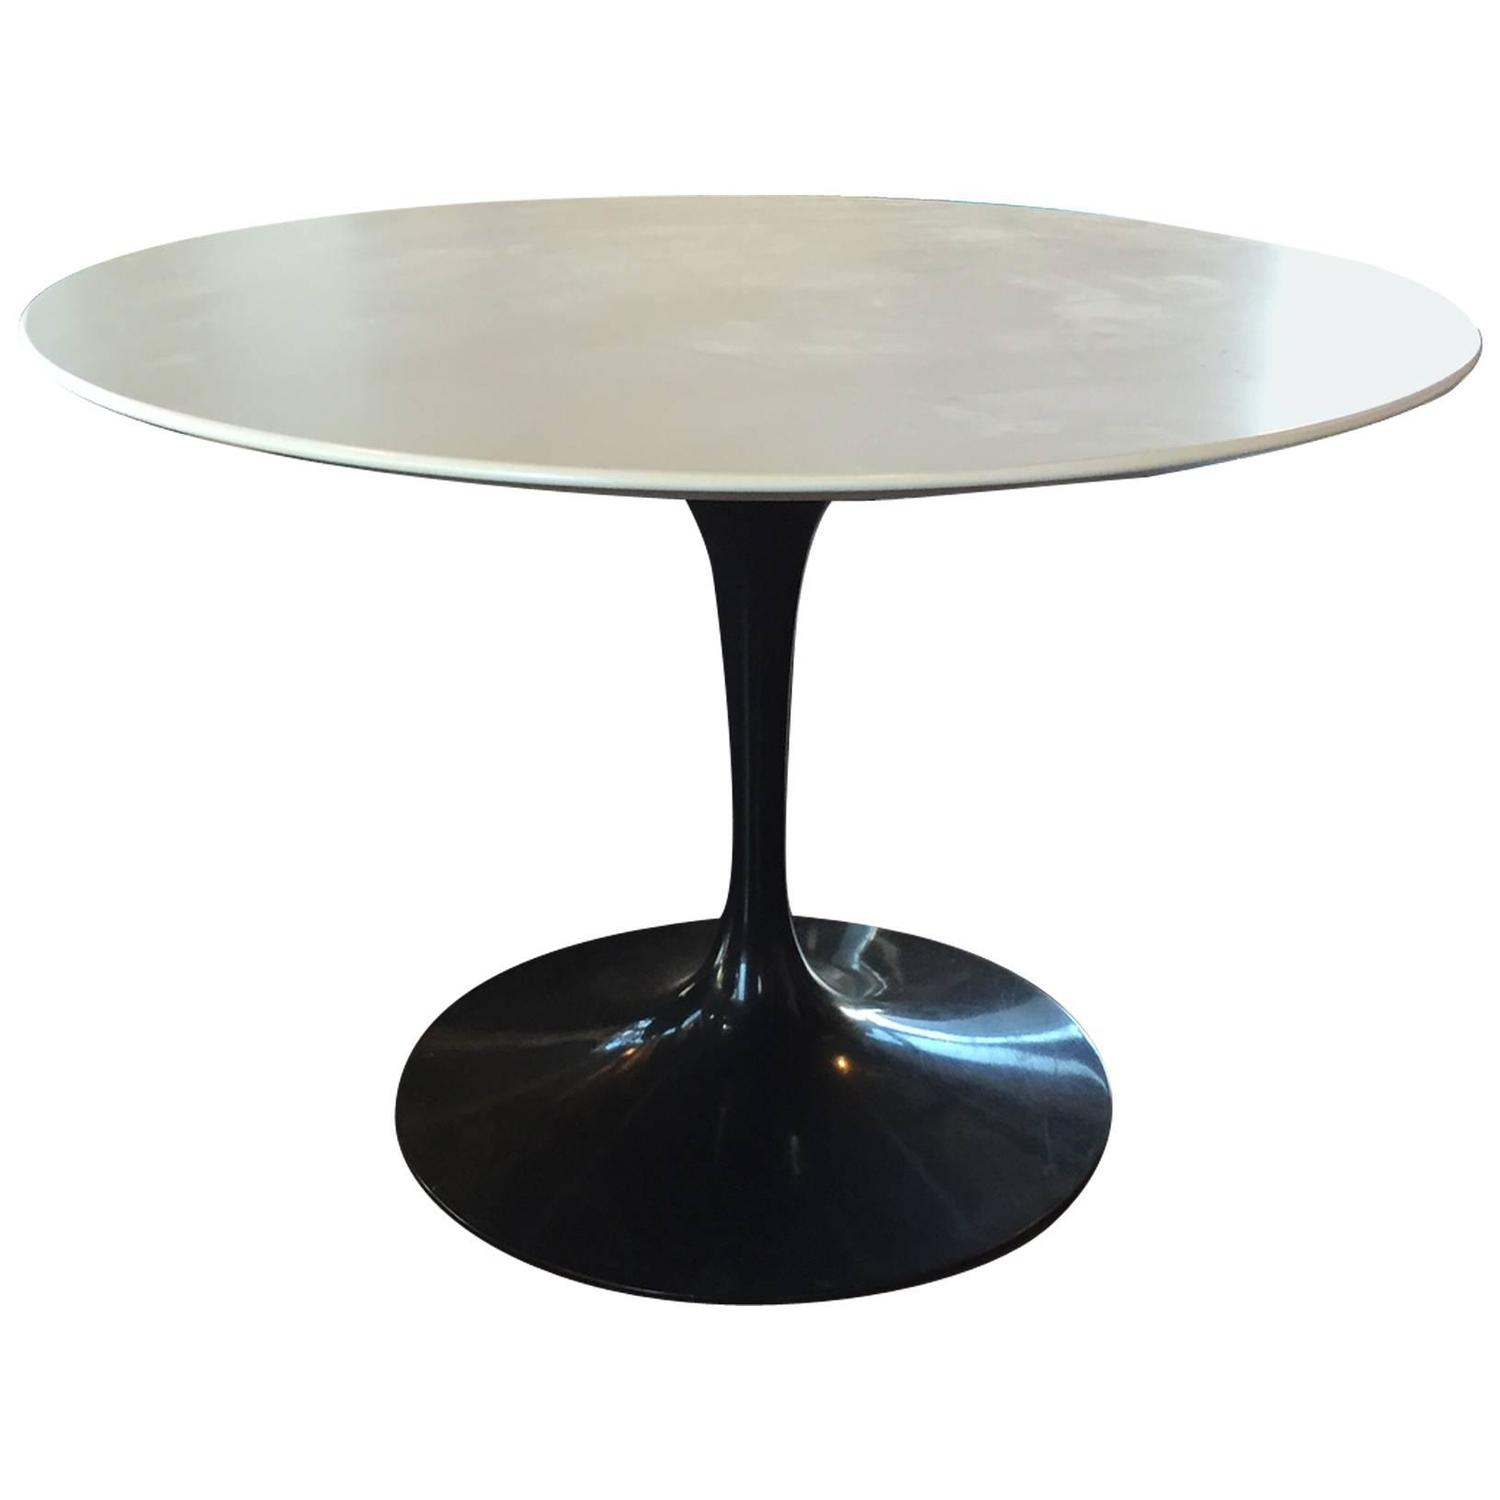 Eero Saarinen For Knoll Tulip Dining Table At 1stdibs